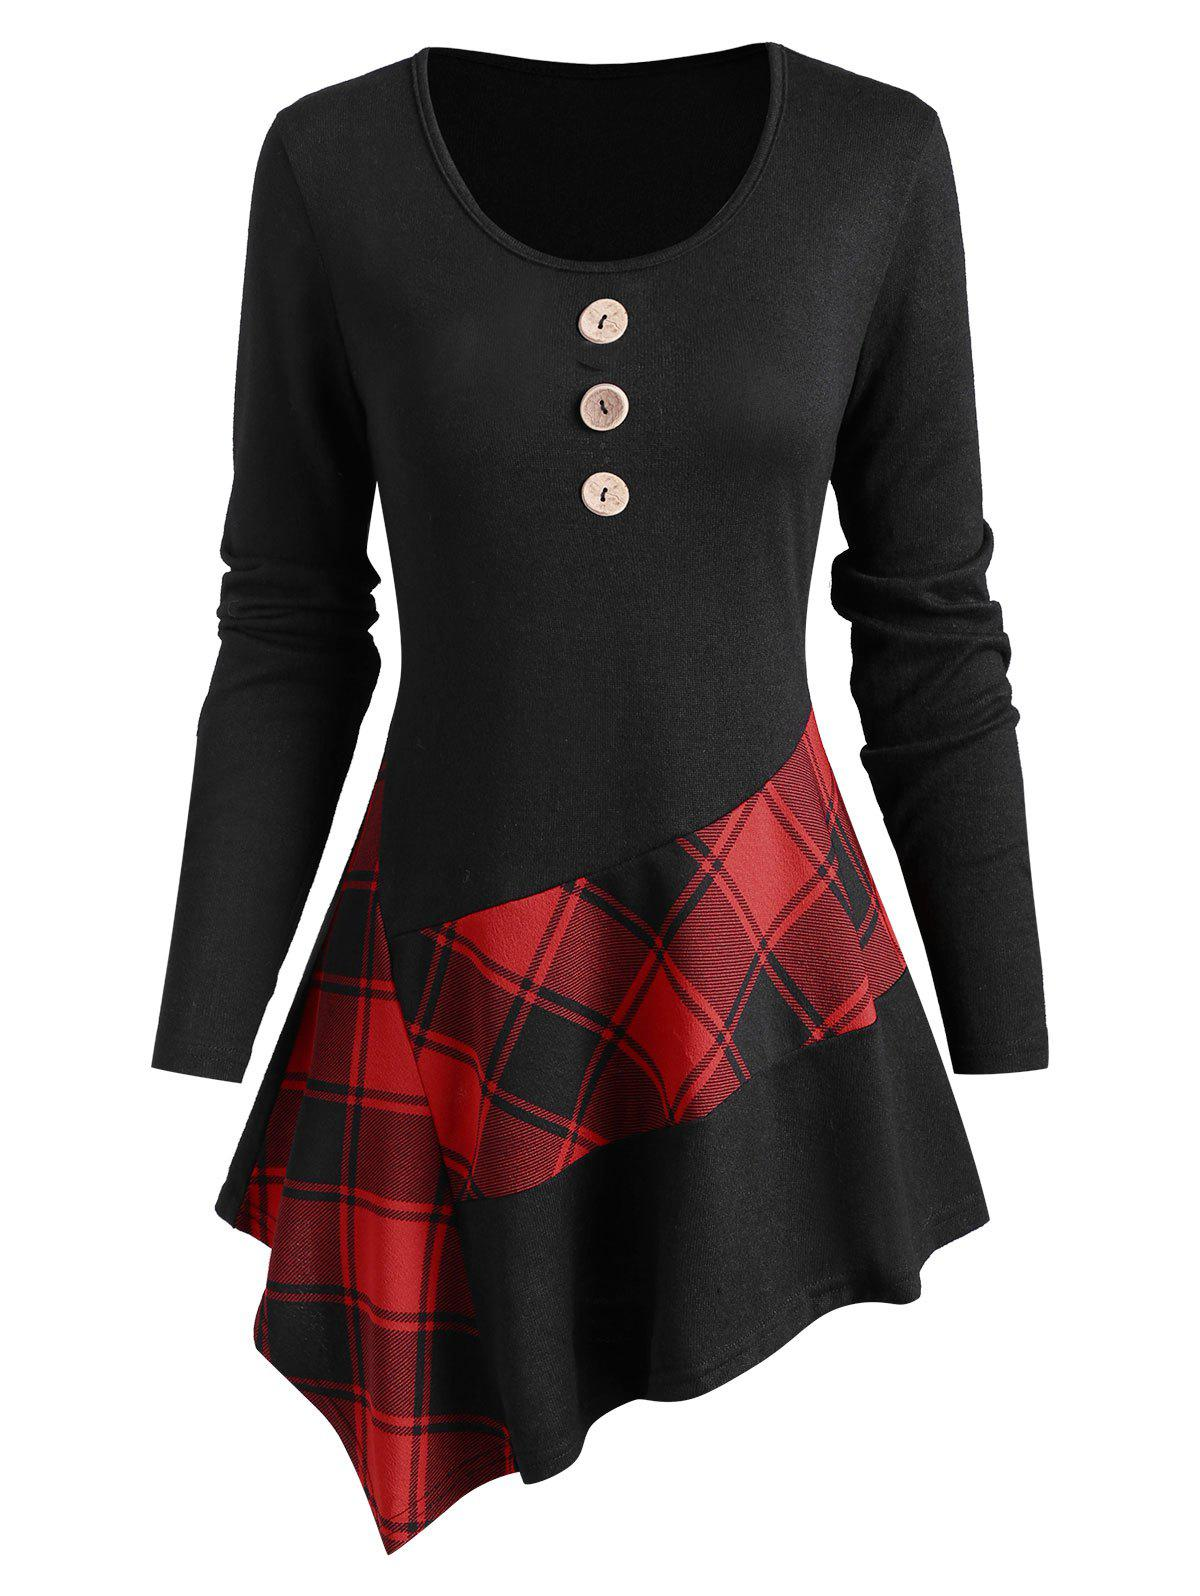 Trendy Plaid Panel Button Embellished Asymmetrical Knitwear